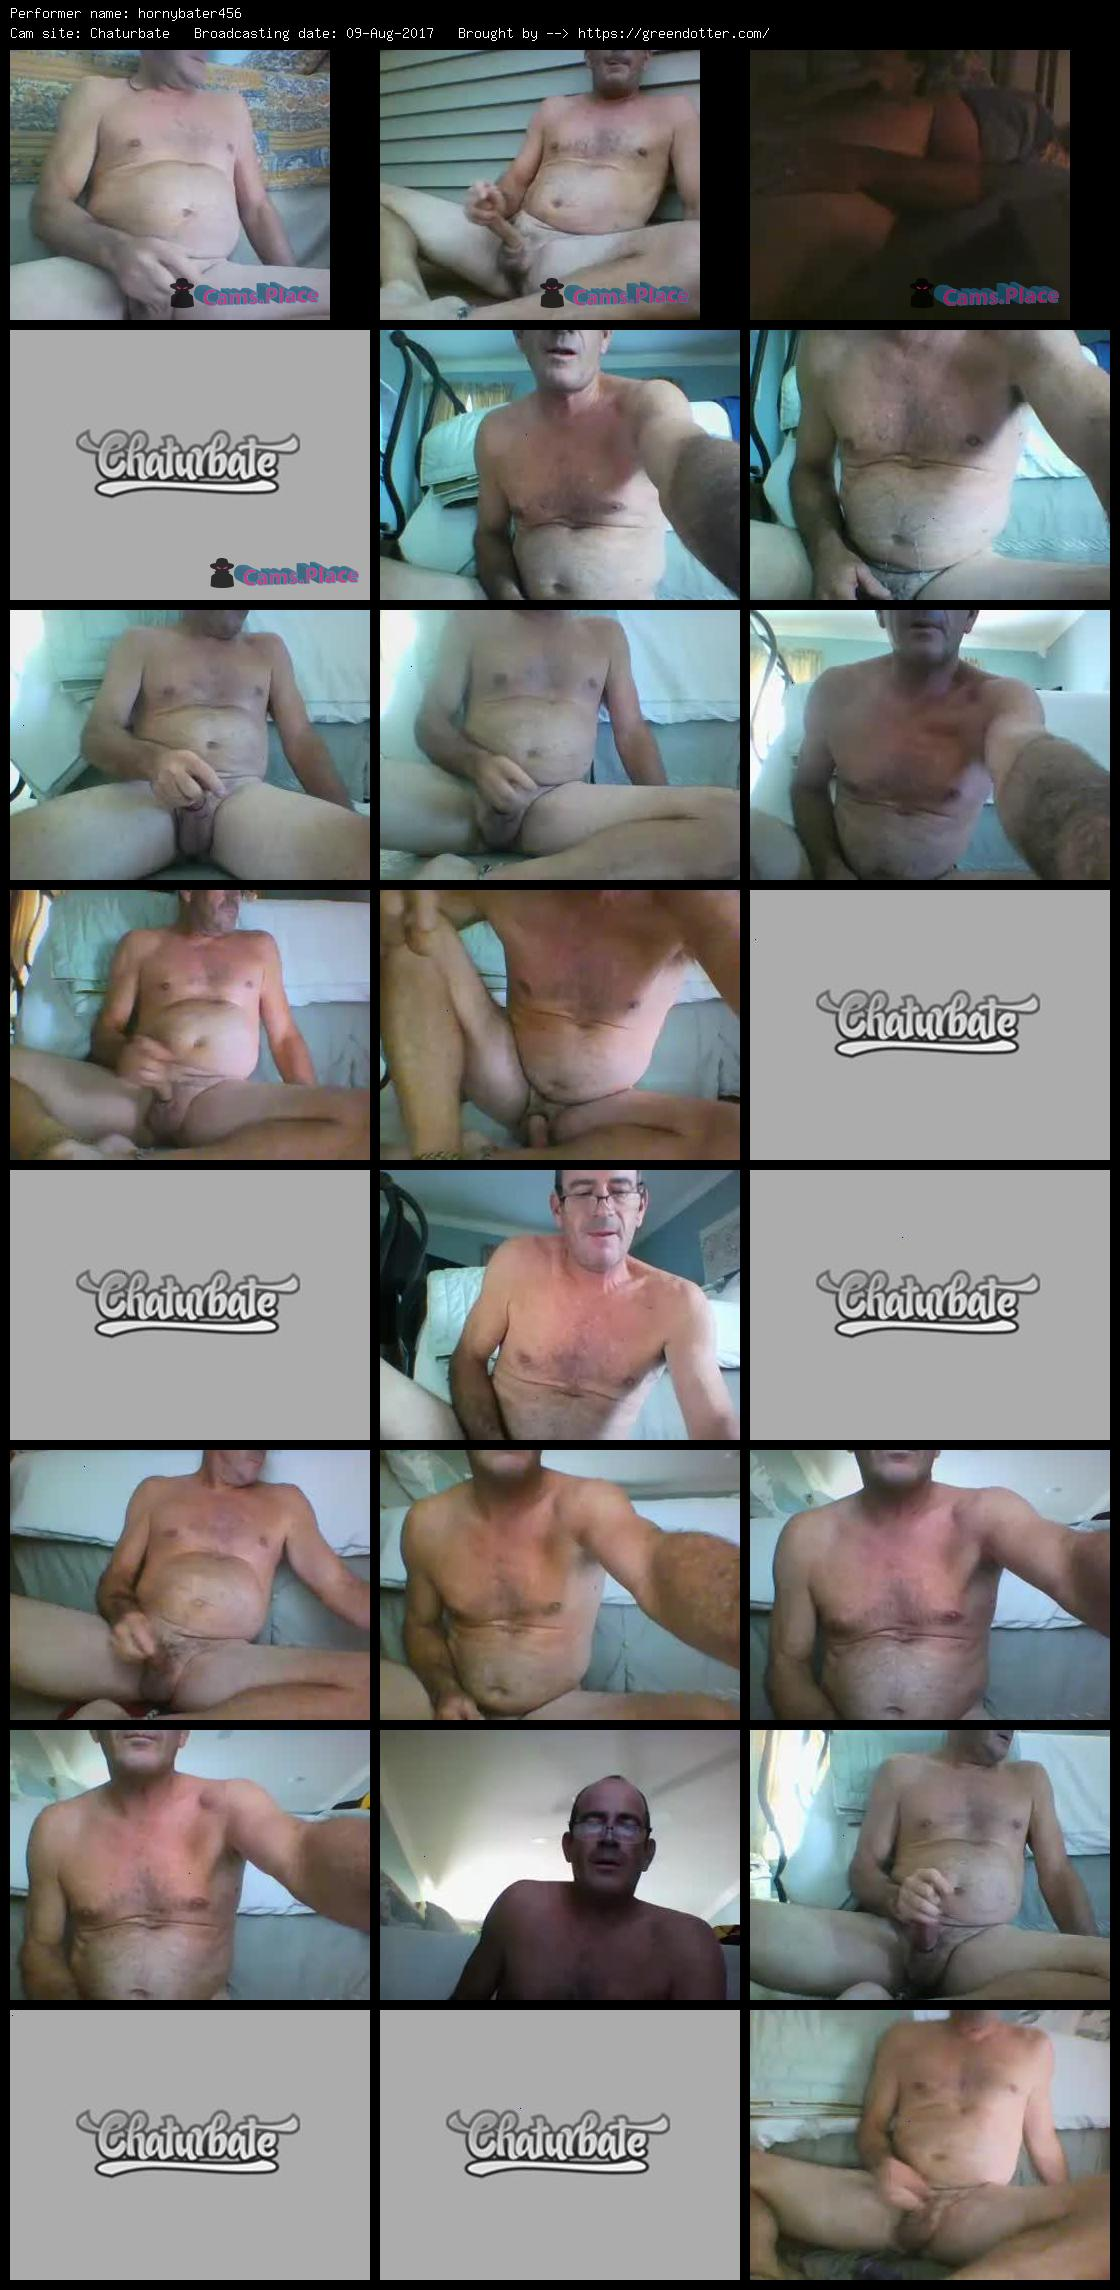 hornybater456's Show Preview